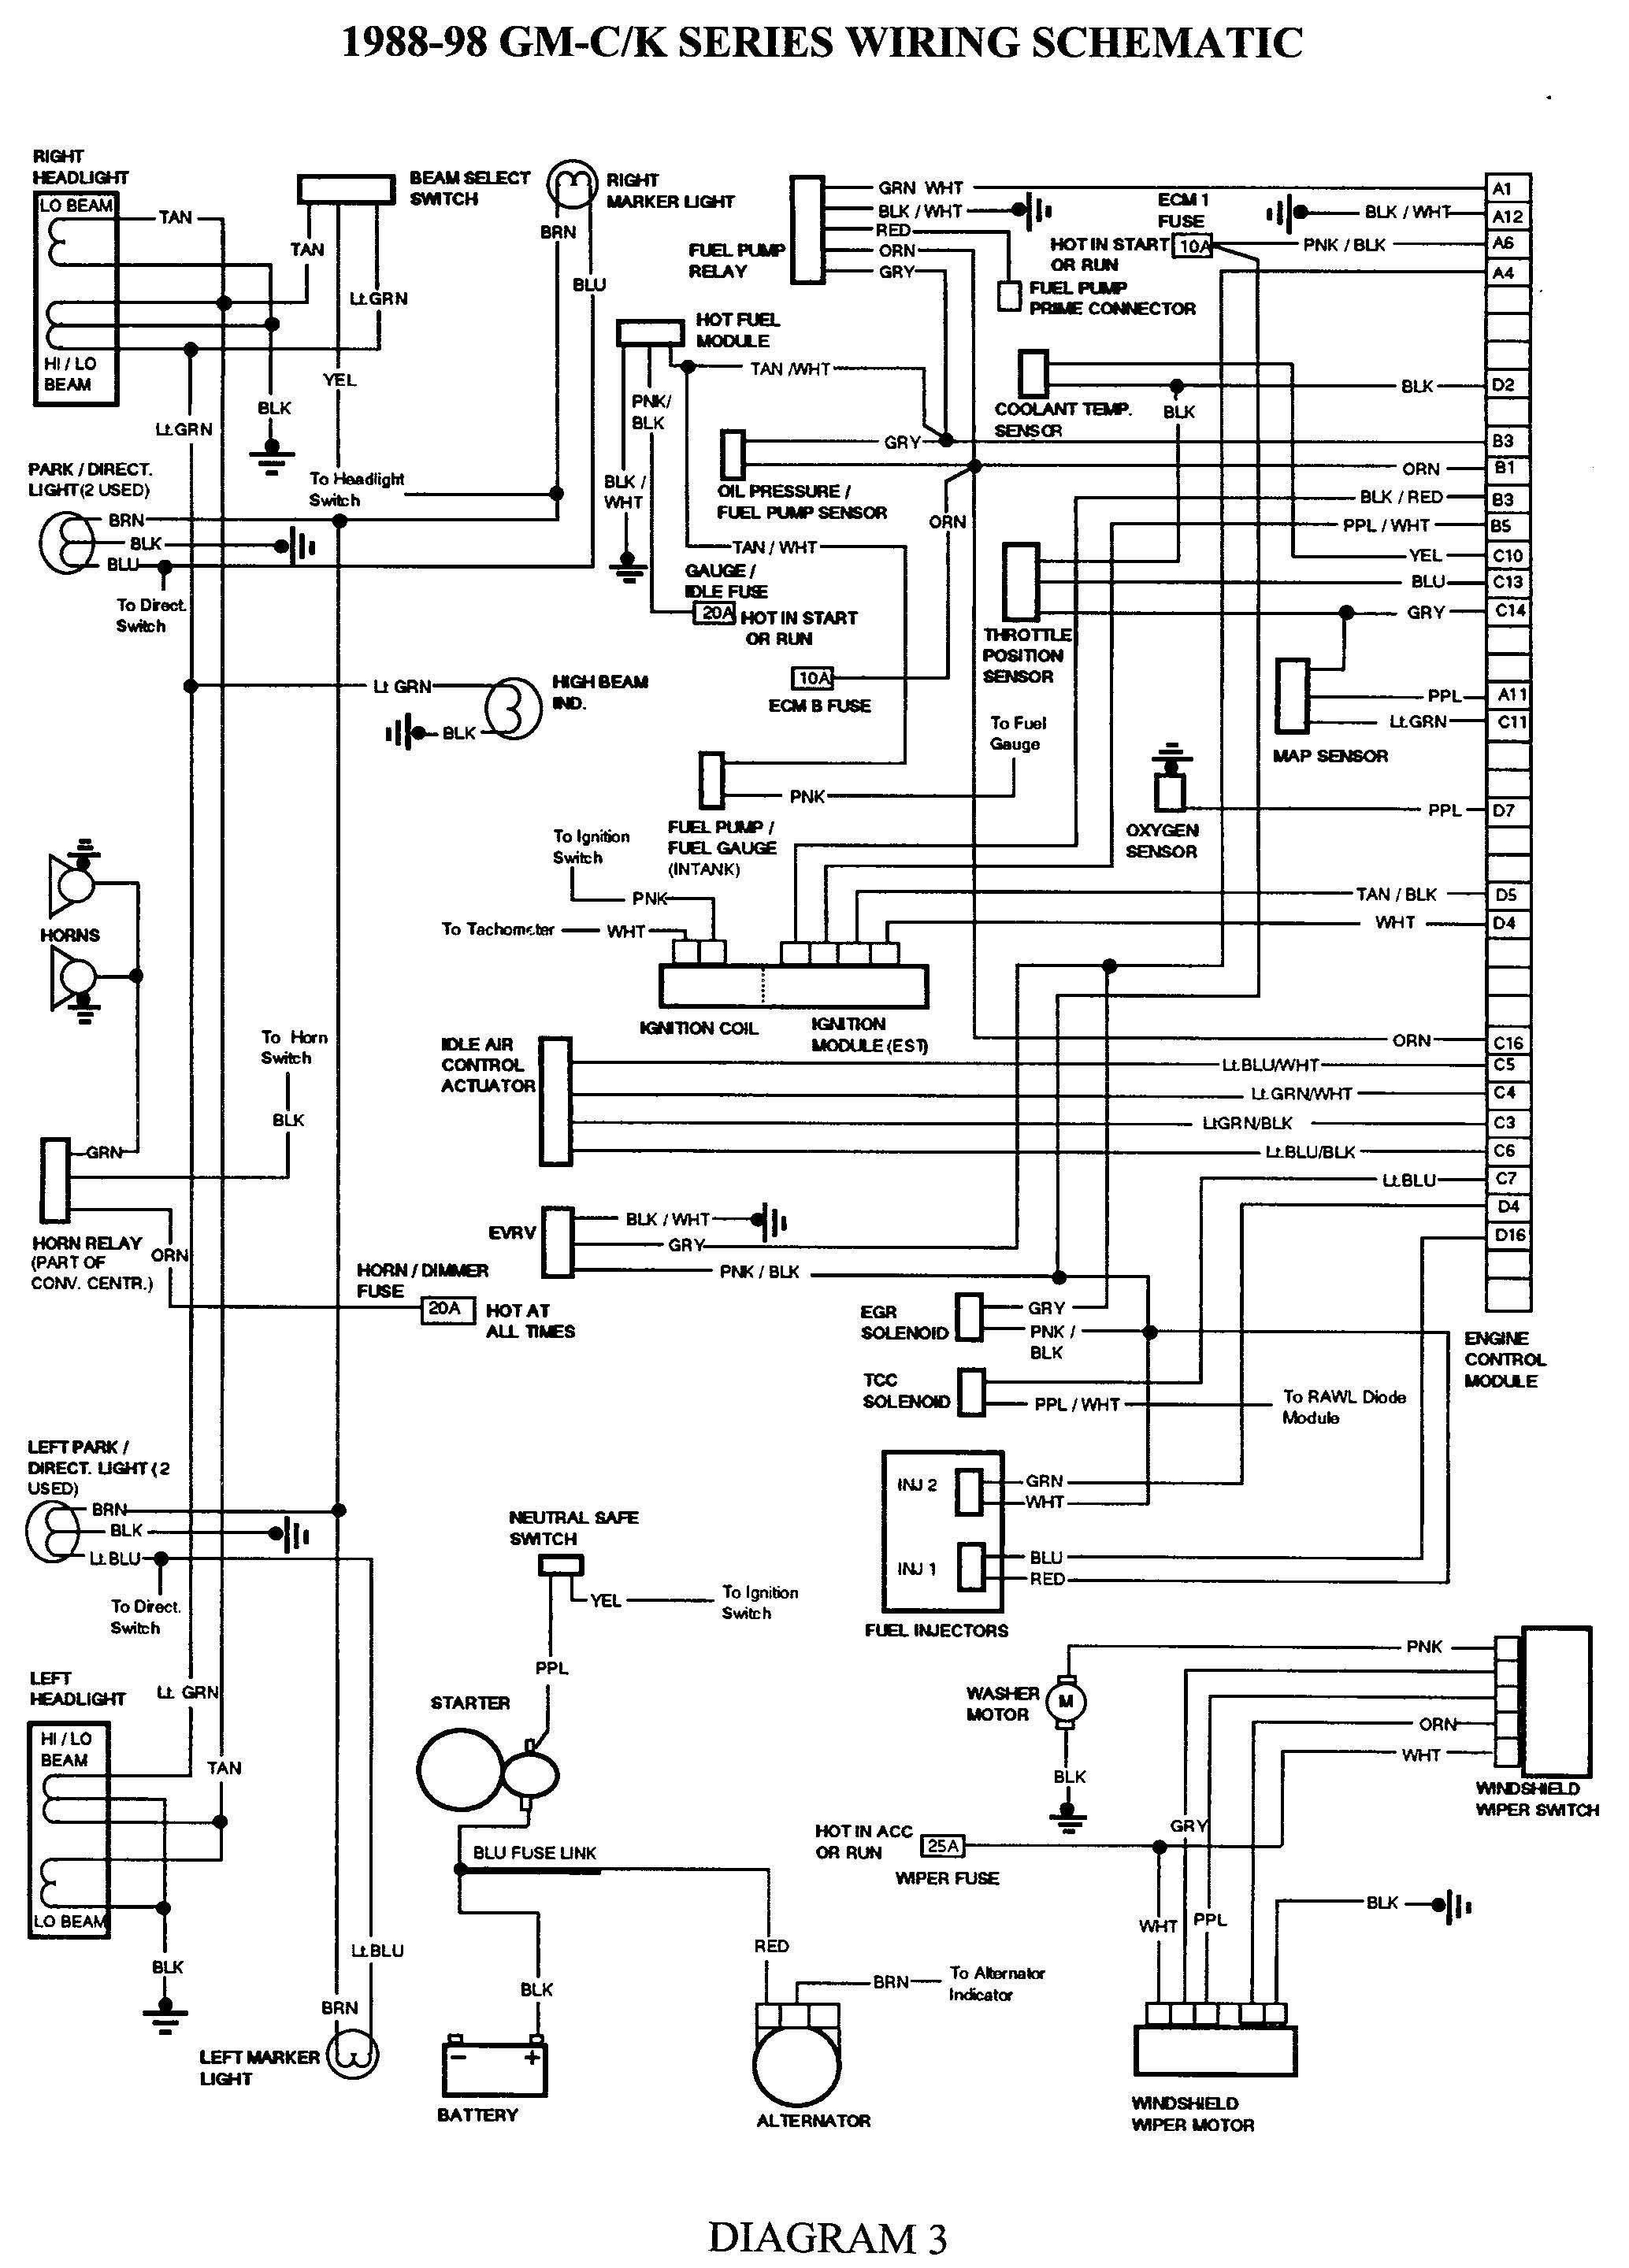 2000 Chevy S10 Wiring Diagram 1998 Chevy K3500 Wiring Diagram Wiring Diagram  Of 2000 Chevy S10